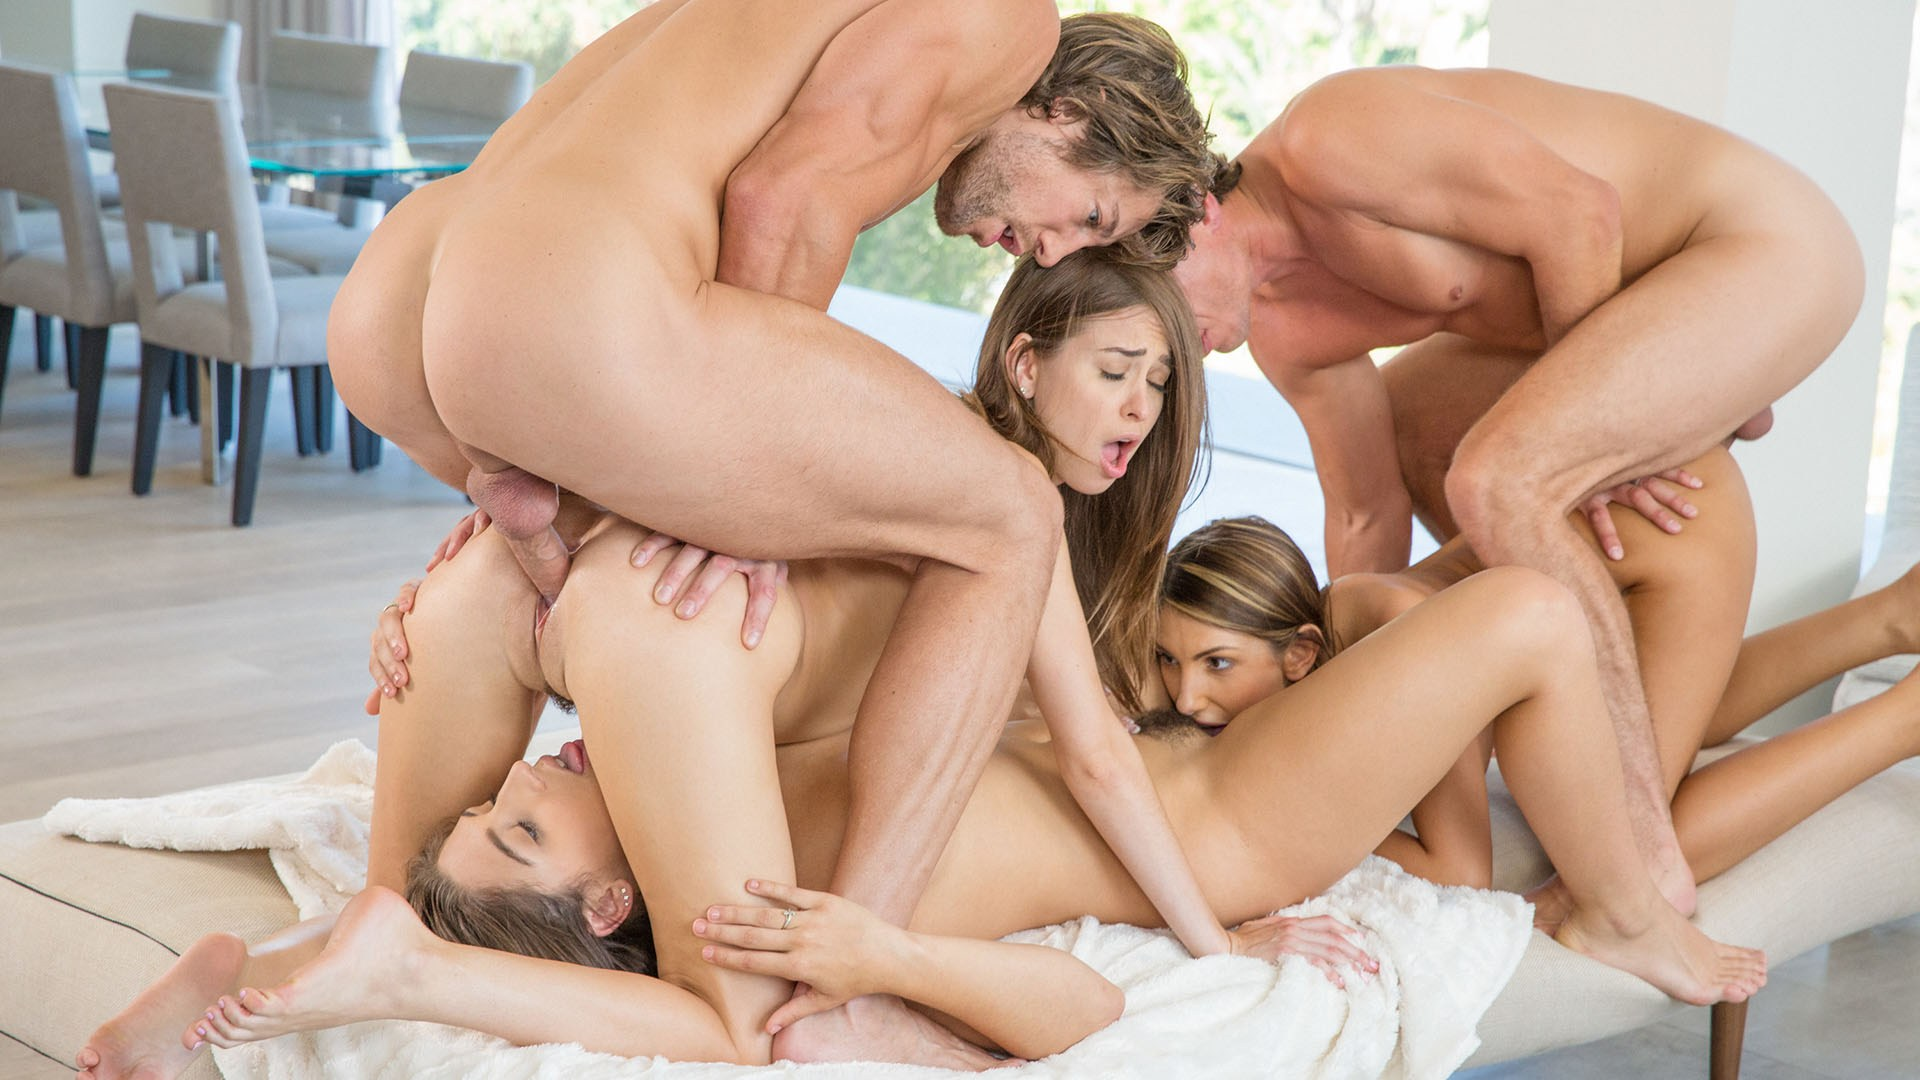 Group Porn